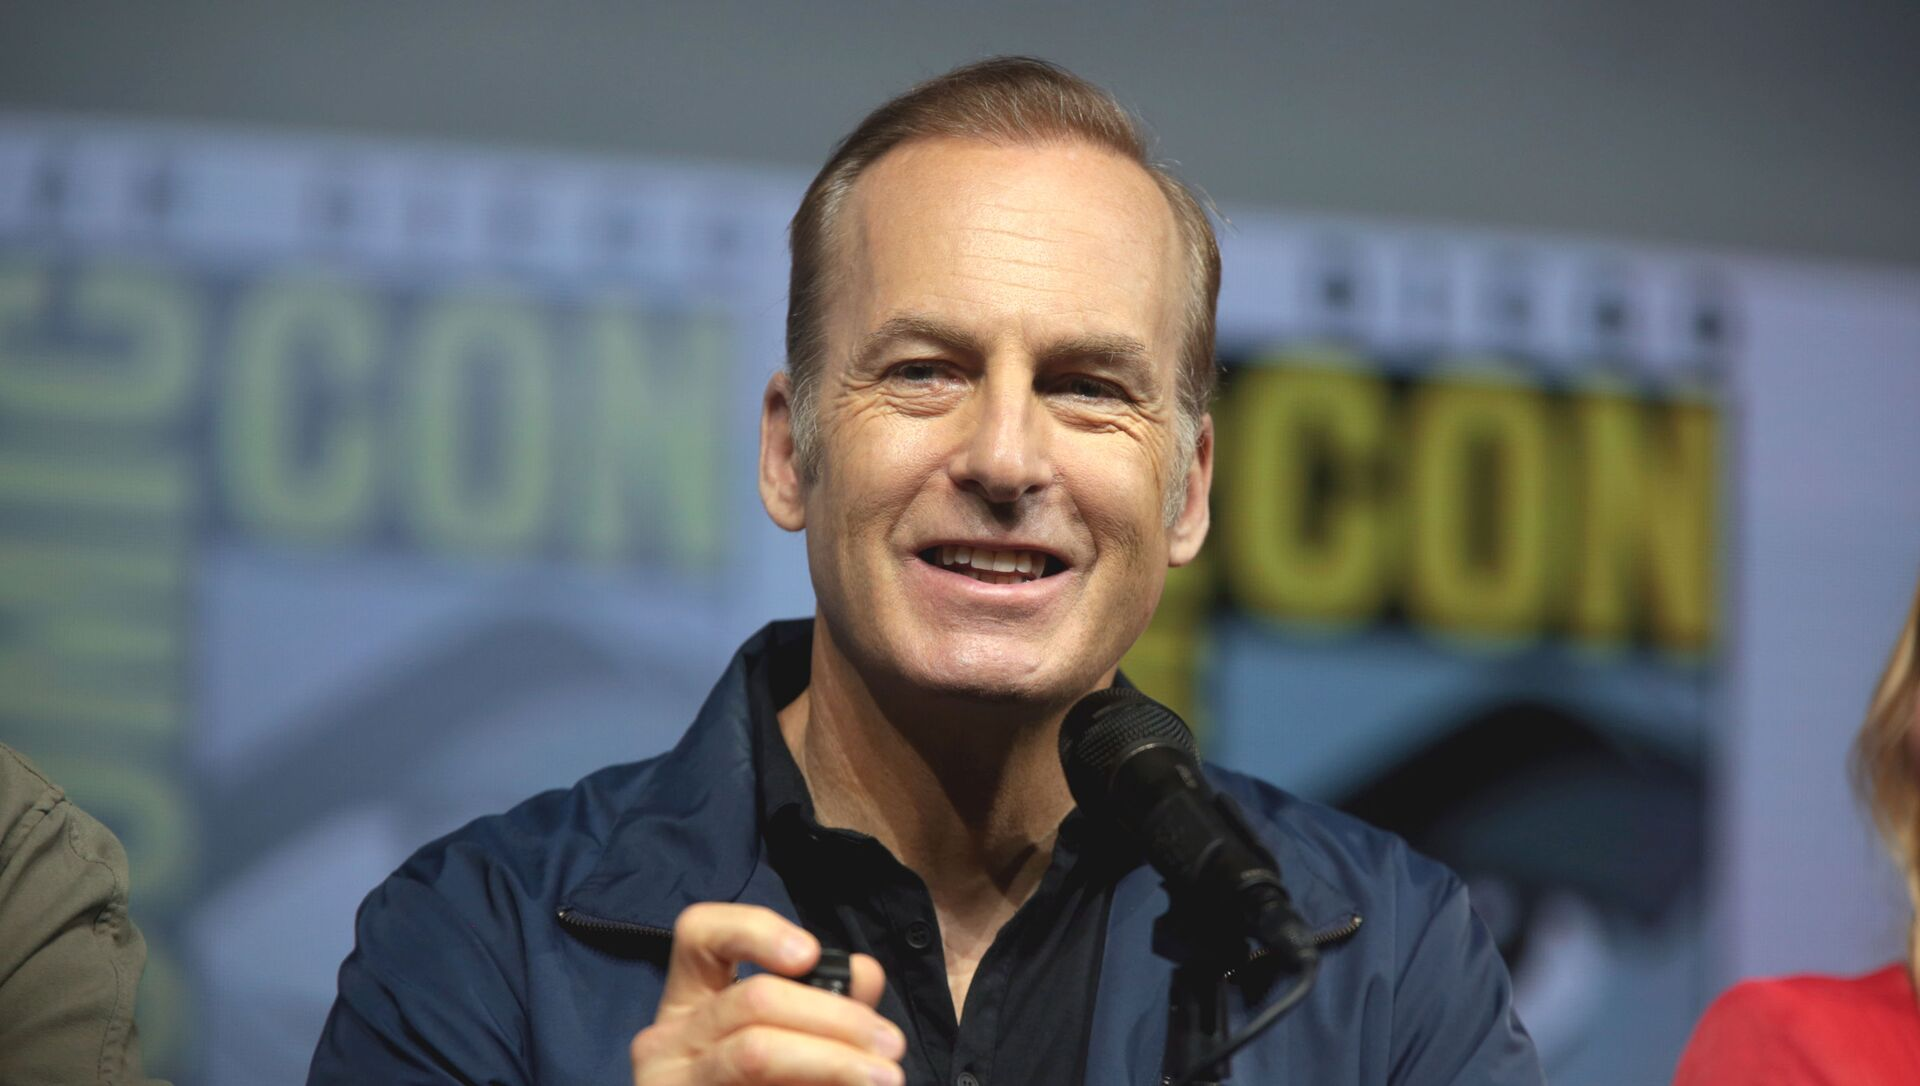 Bob Odenkirk speaking at the 2018 San Diego Comic Con International, for Better Call Saul, at the San Diego Convention Center in San Diego, California. - Sputnik International, 1920, 28.07.2021